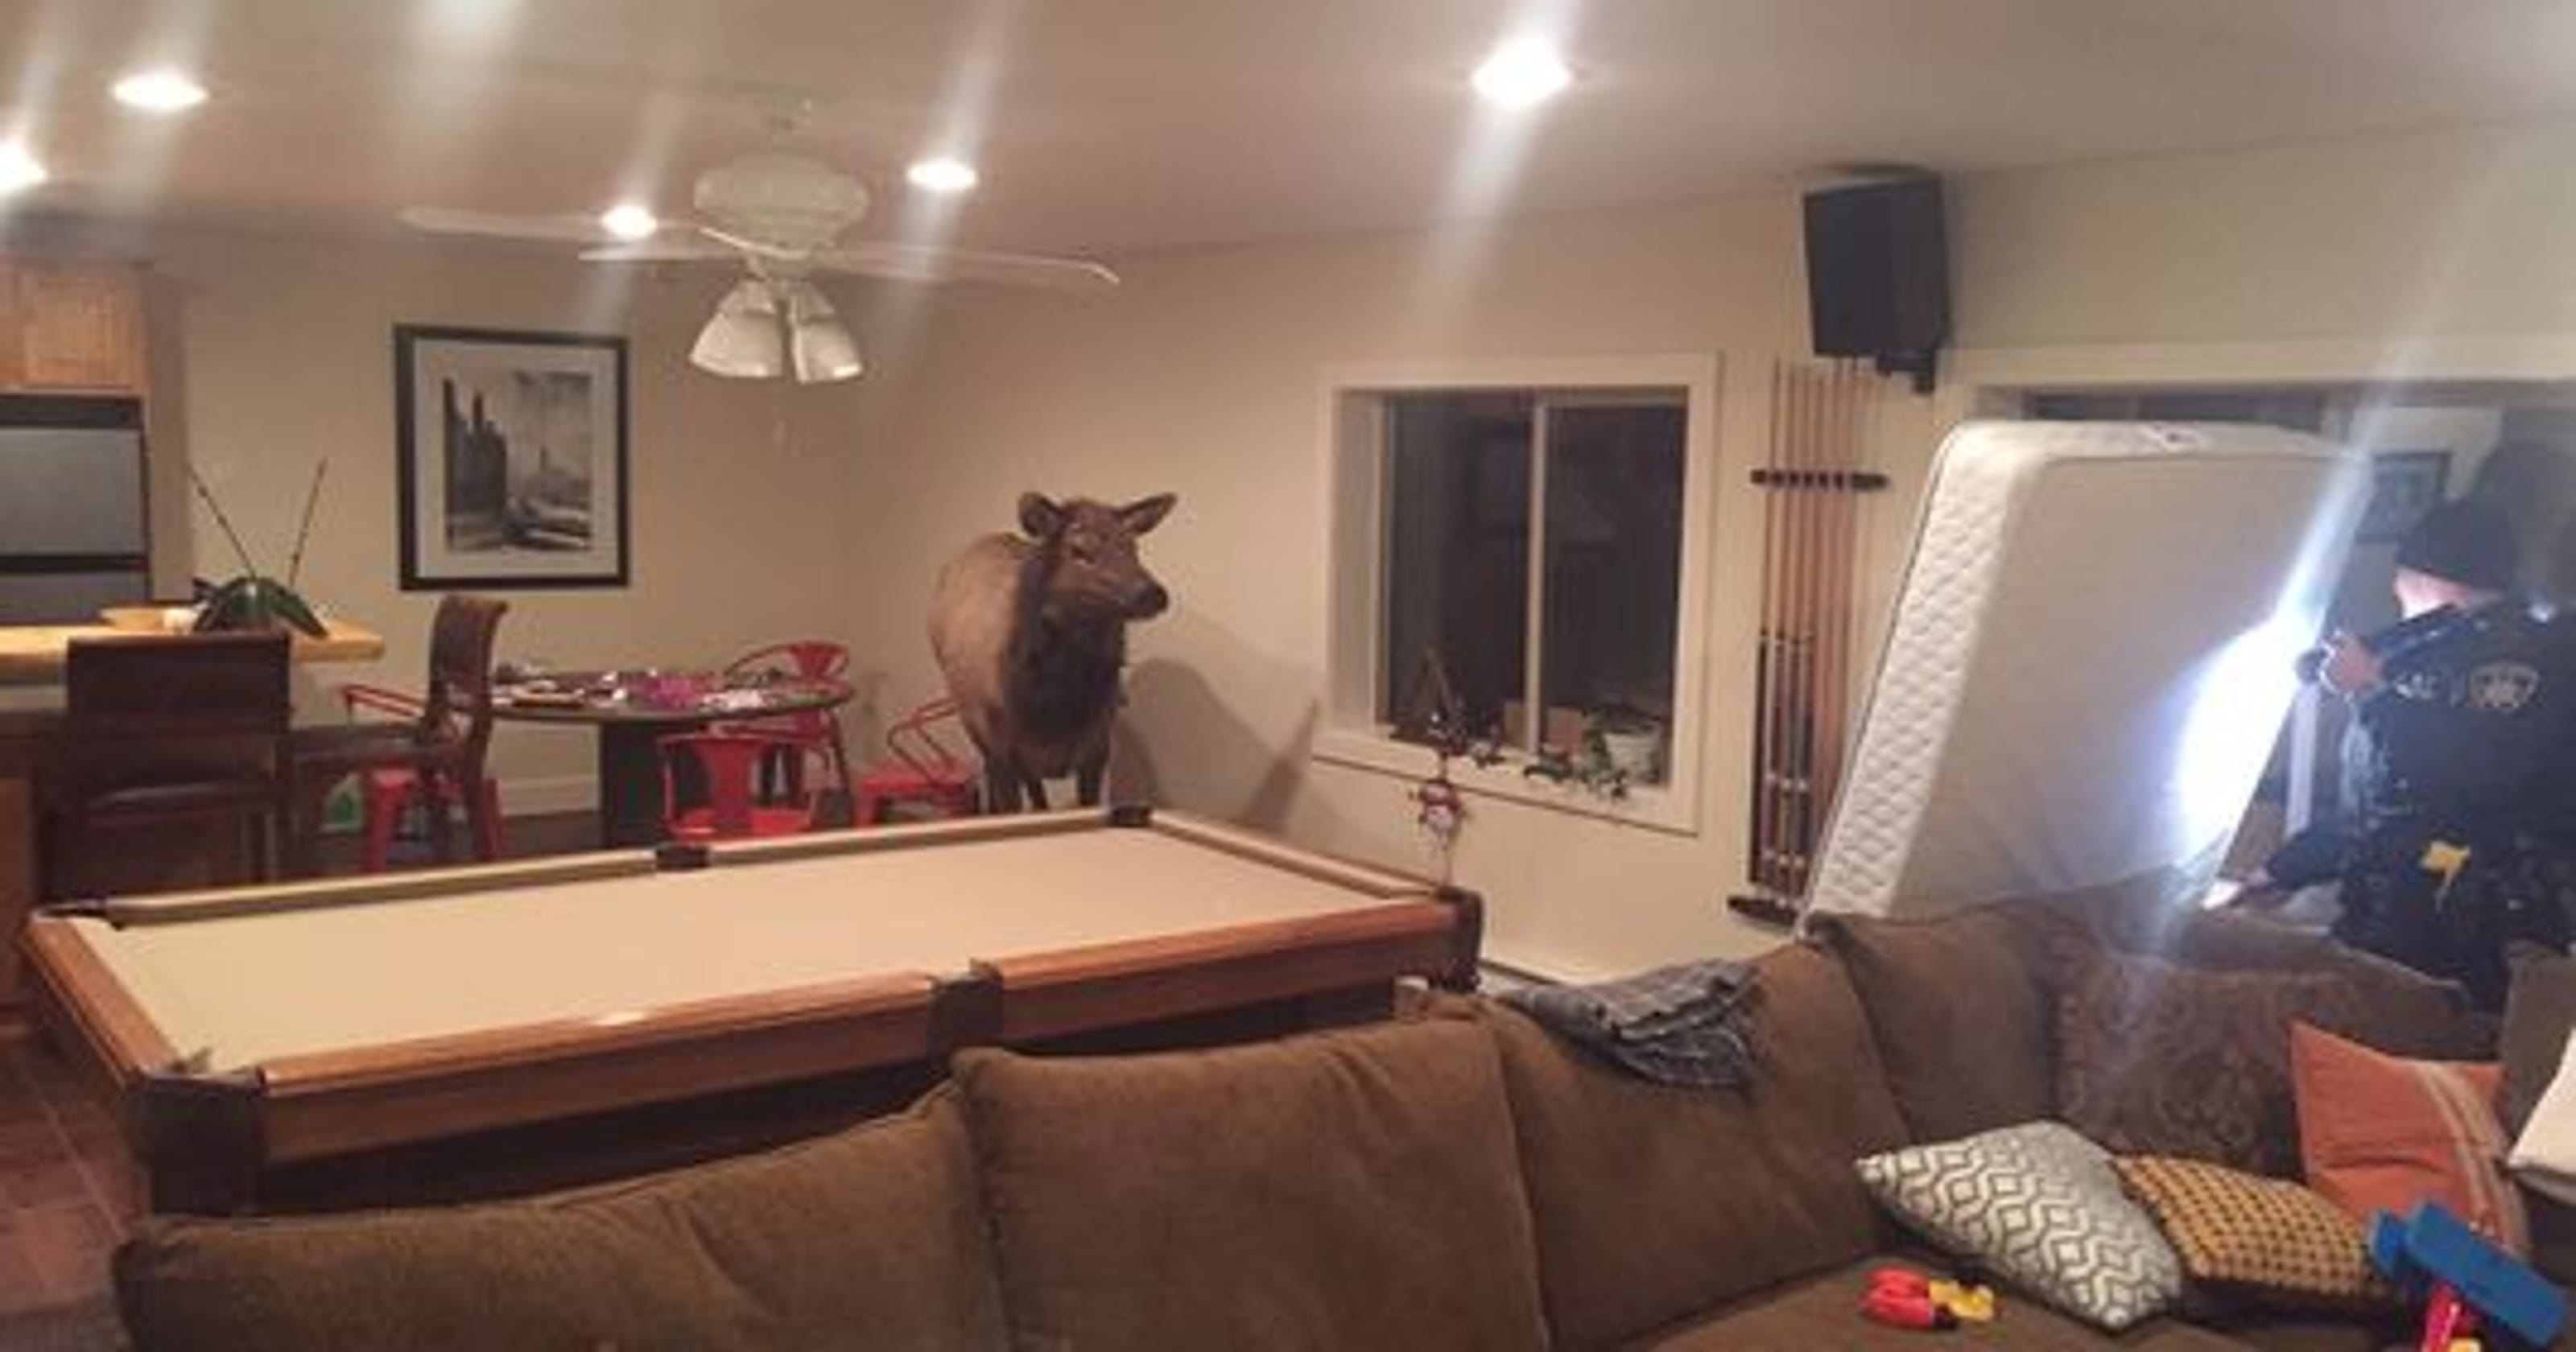 Elk falls through window into living room for Idaho fish and game jobs